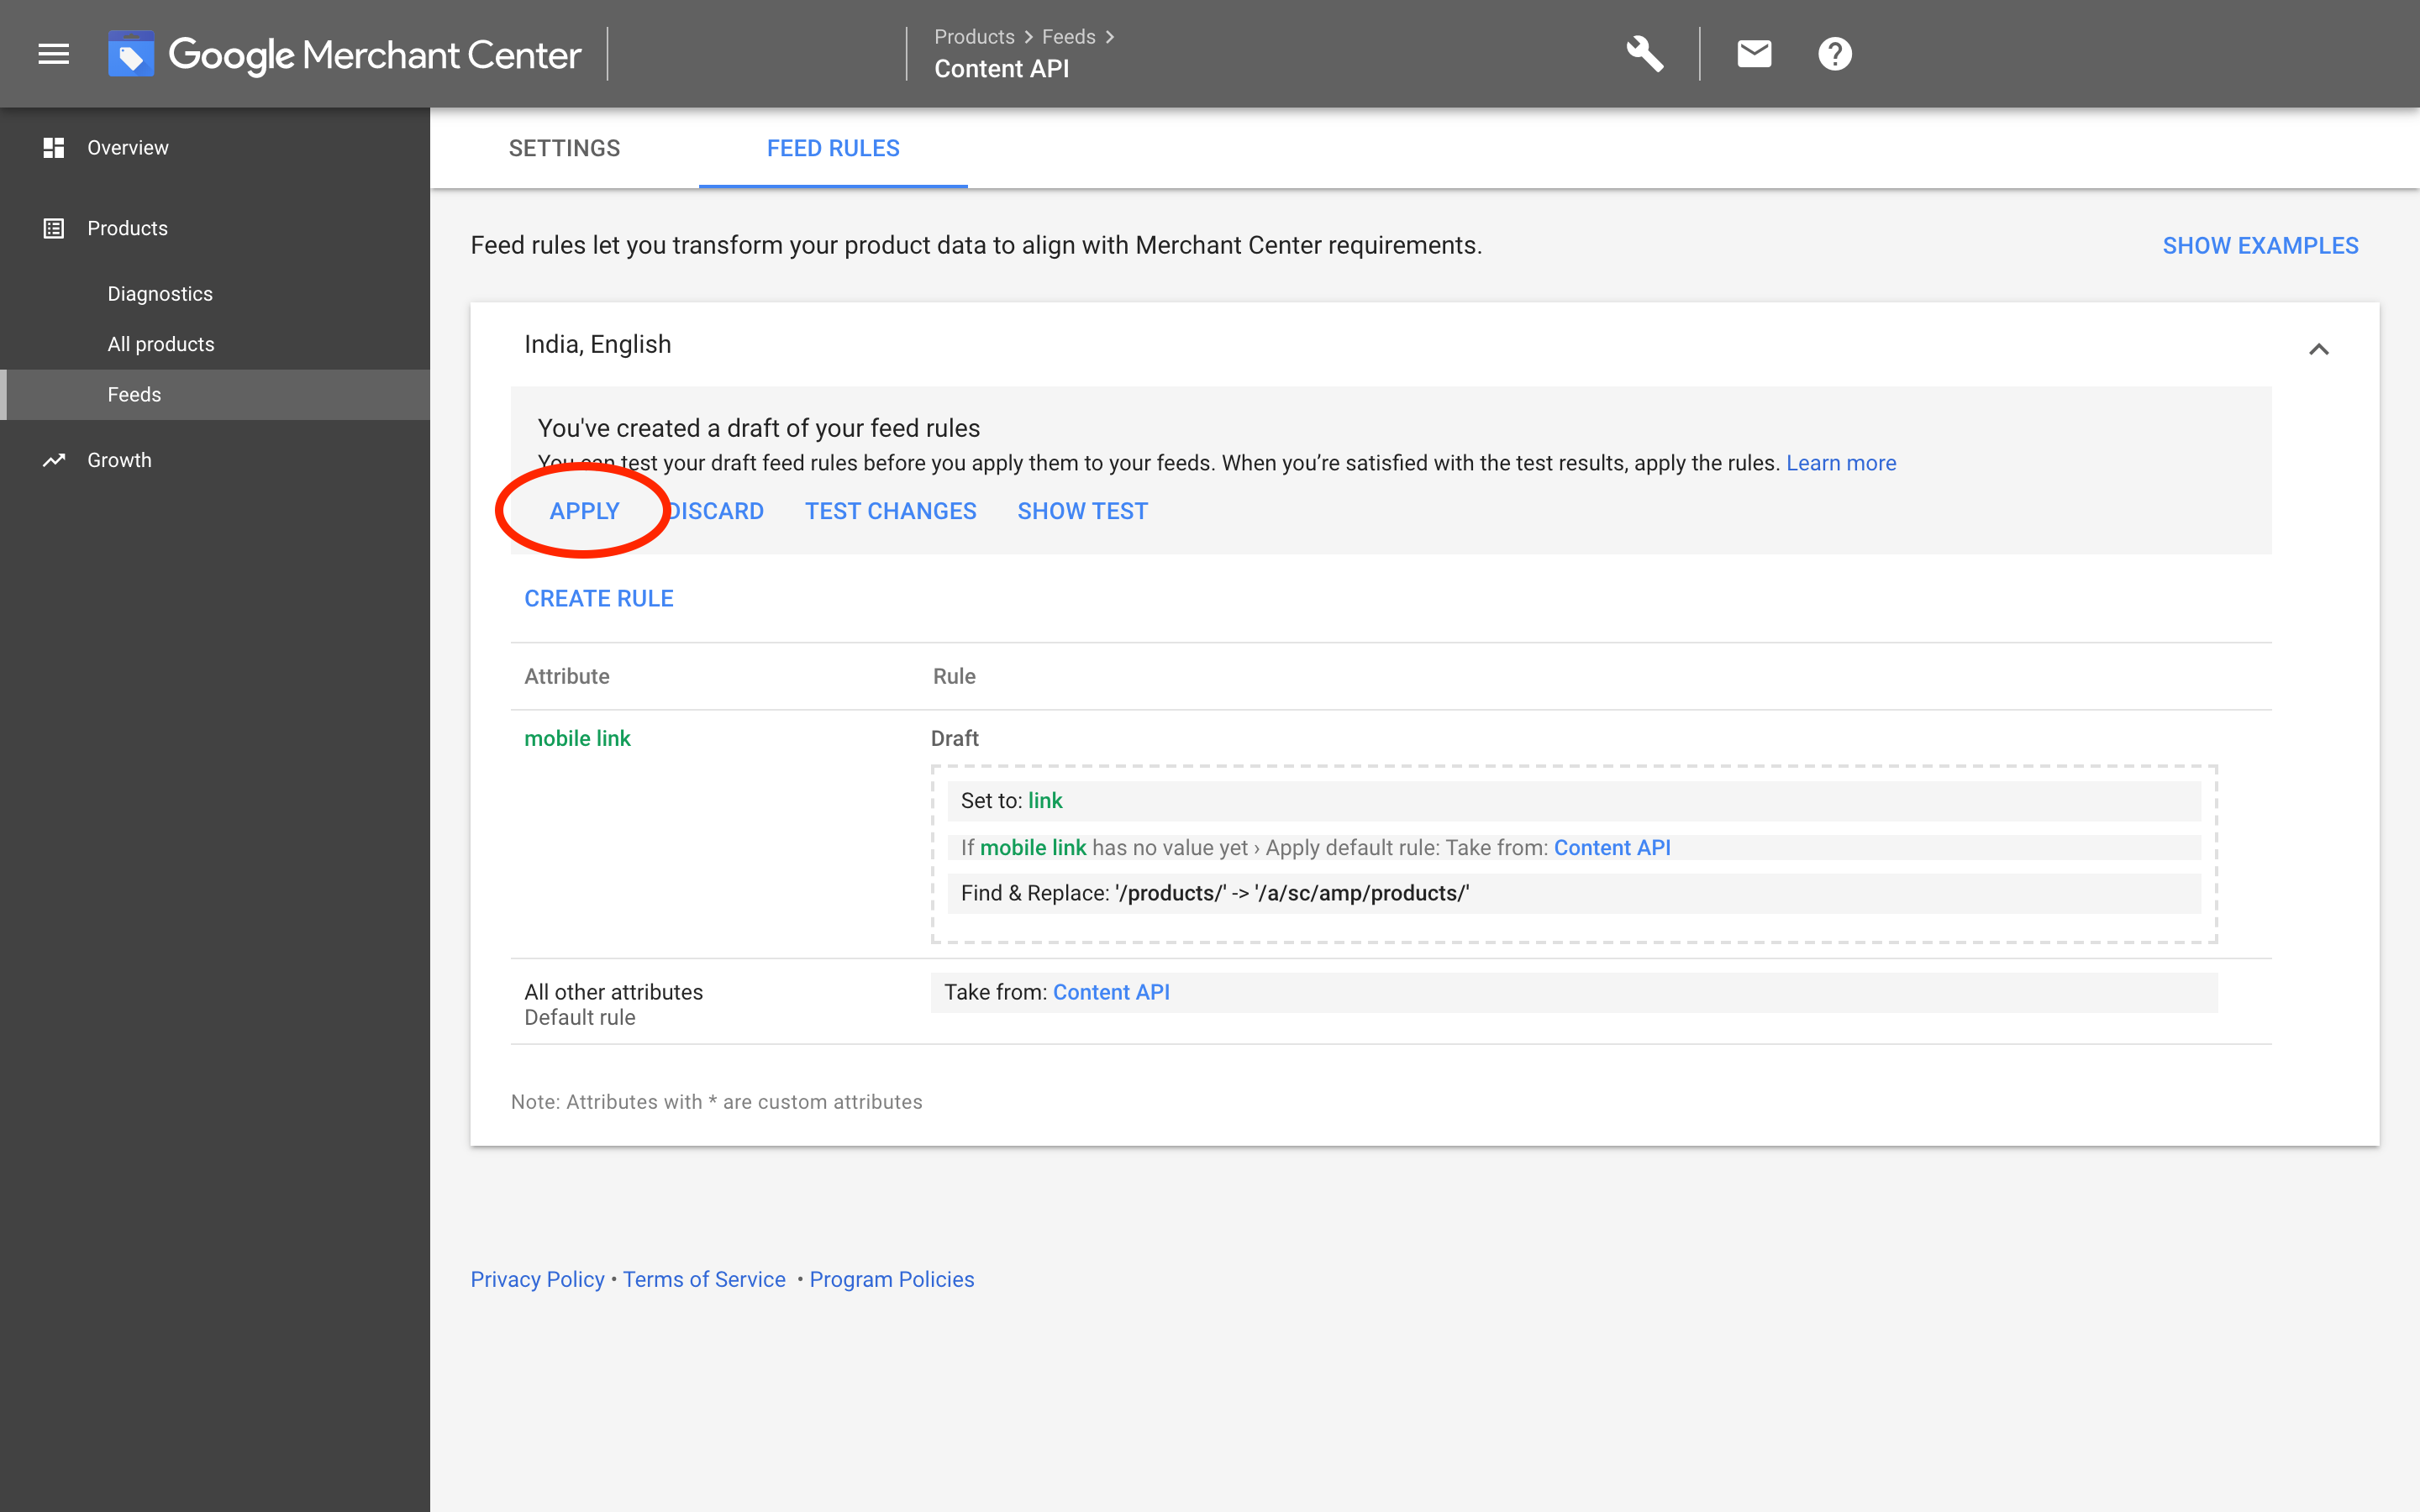 Google Merchants: Apply changes